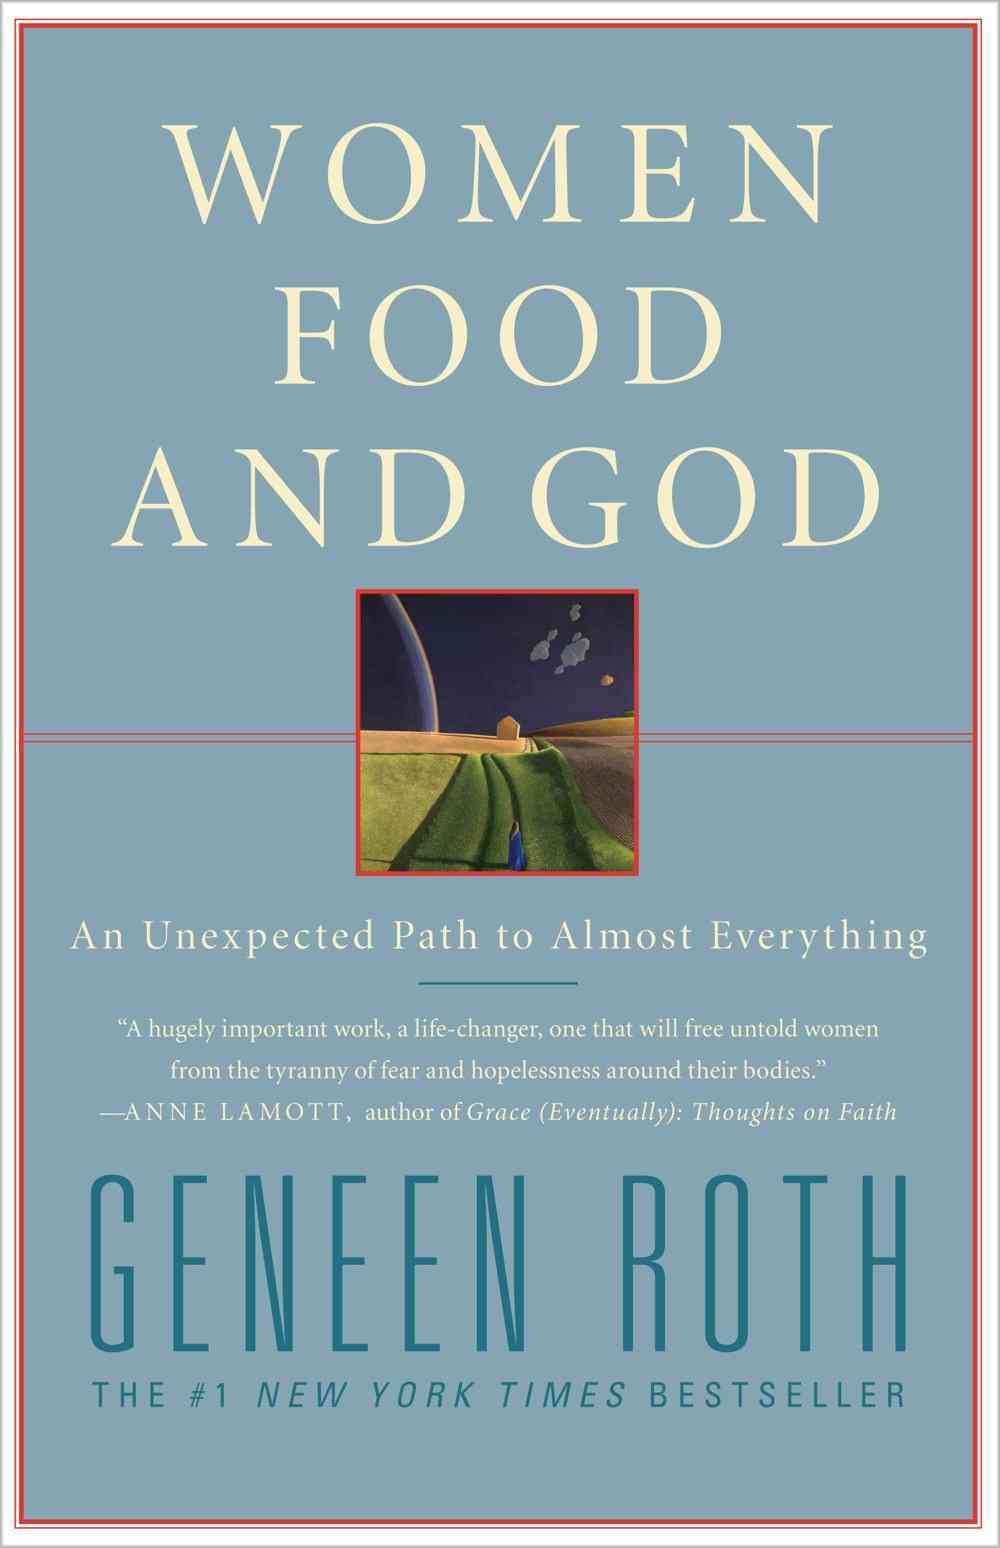 women food and god book cover.jpg